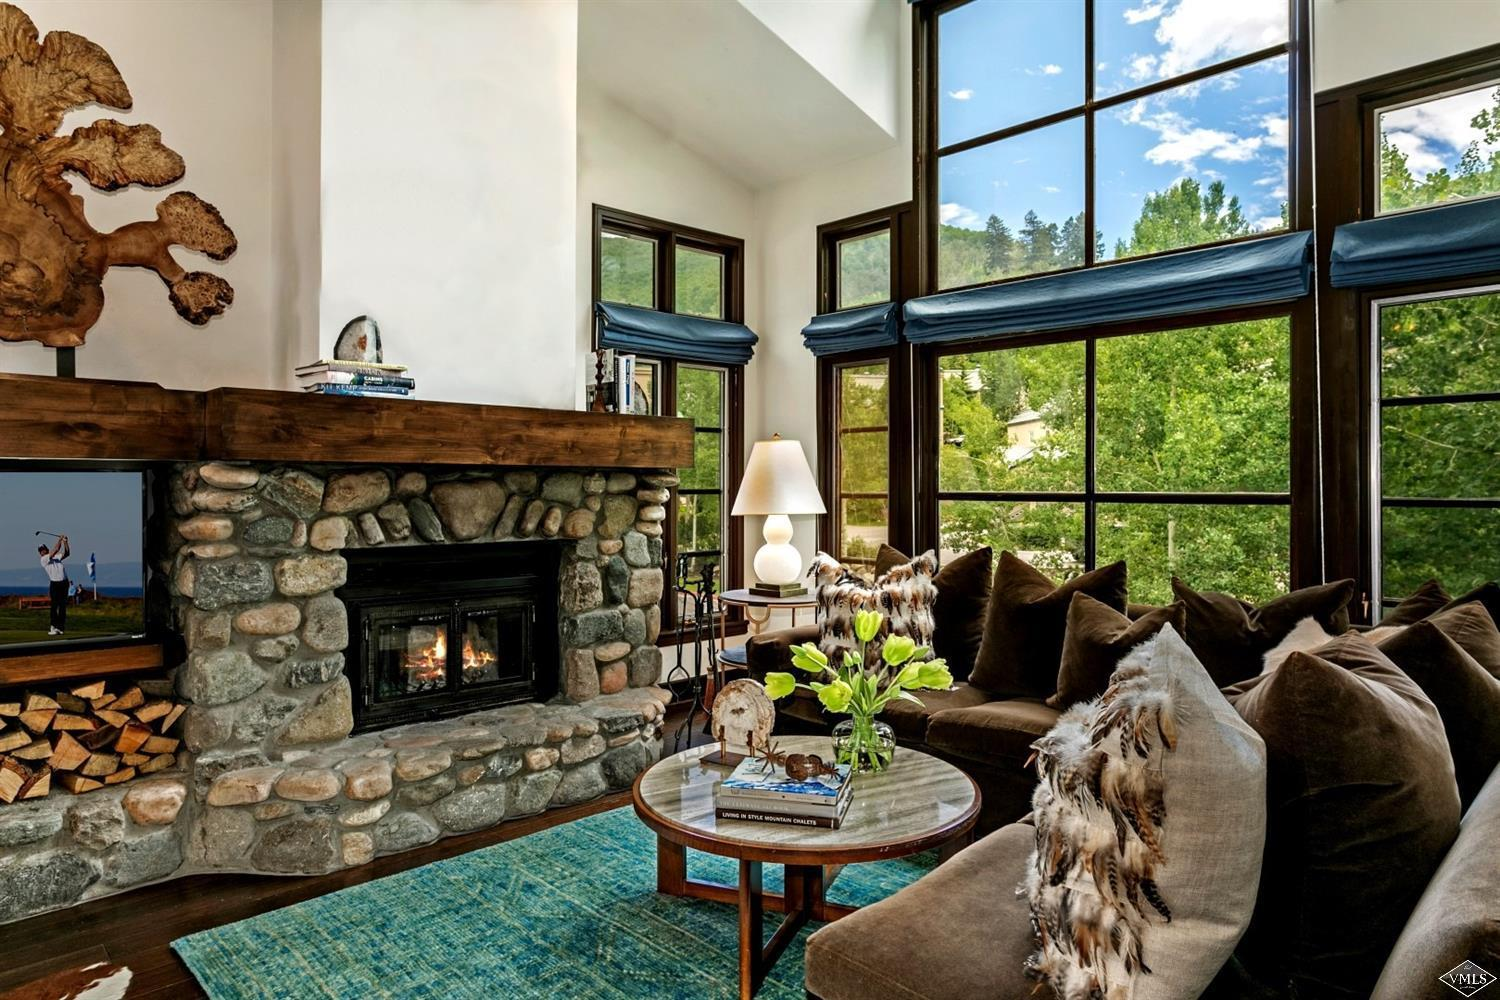 365 Offerson Road, N2, Beaver Creek, CO 81620 Property Photo - Beaver Creek, CO real estate listing